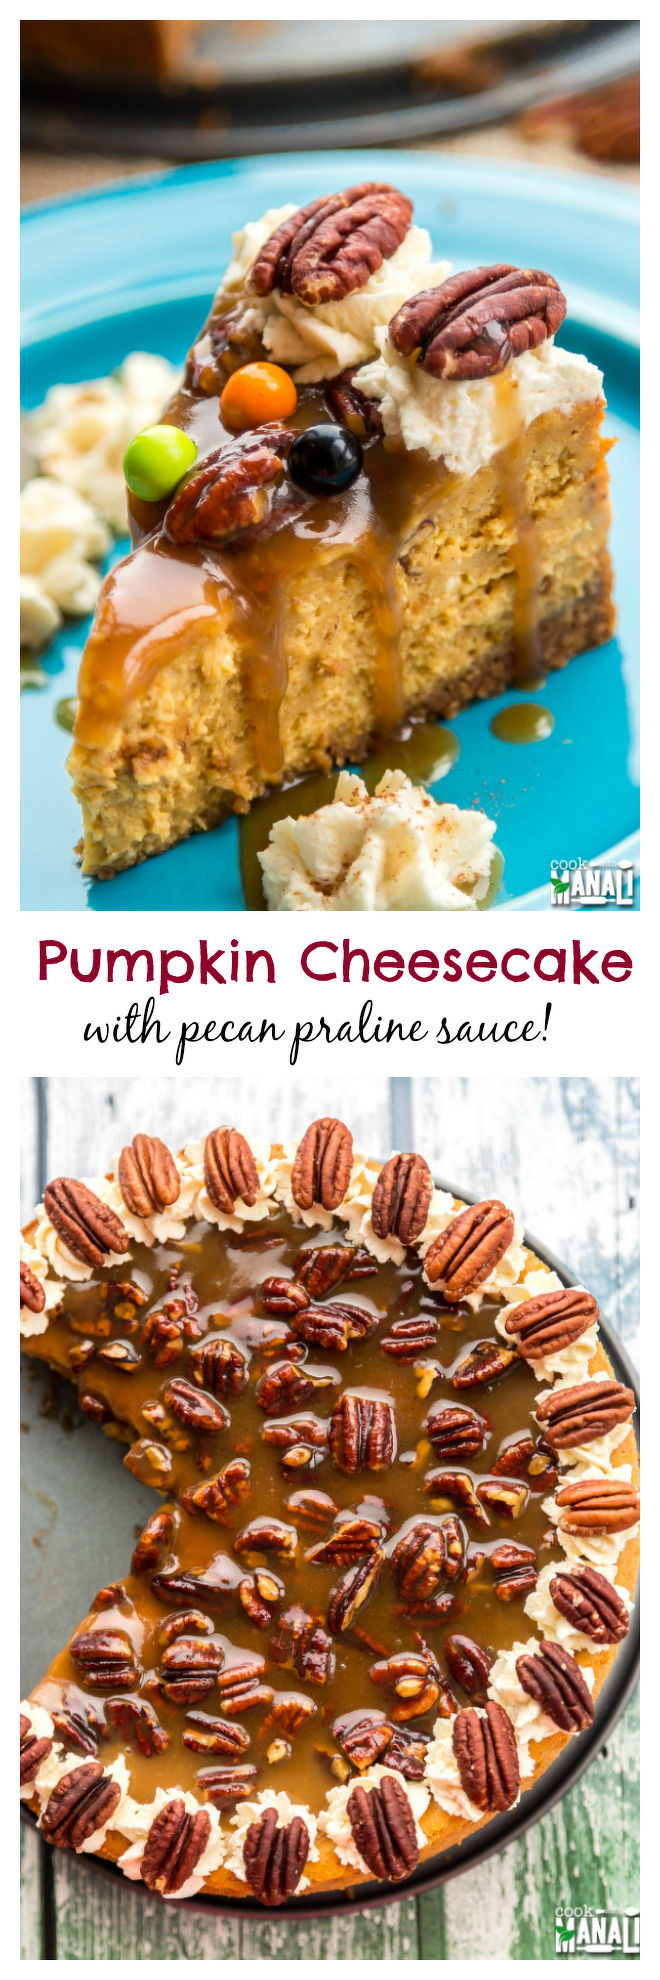 Pumpkin Cheesecake-Collage-nocwm